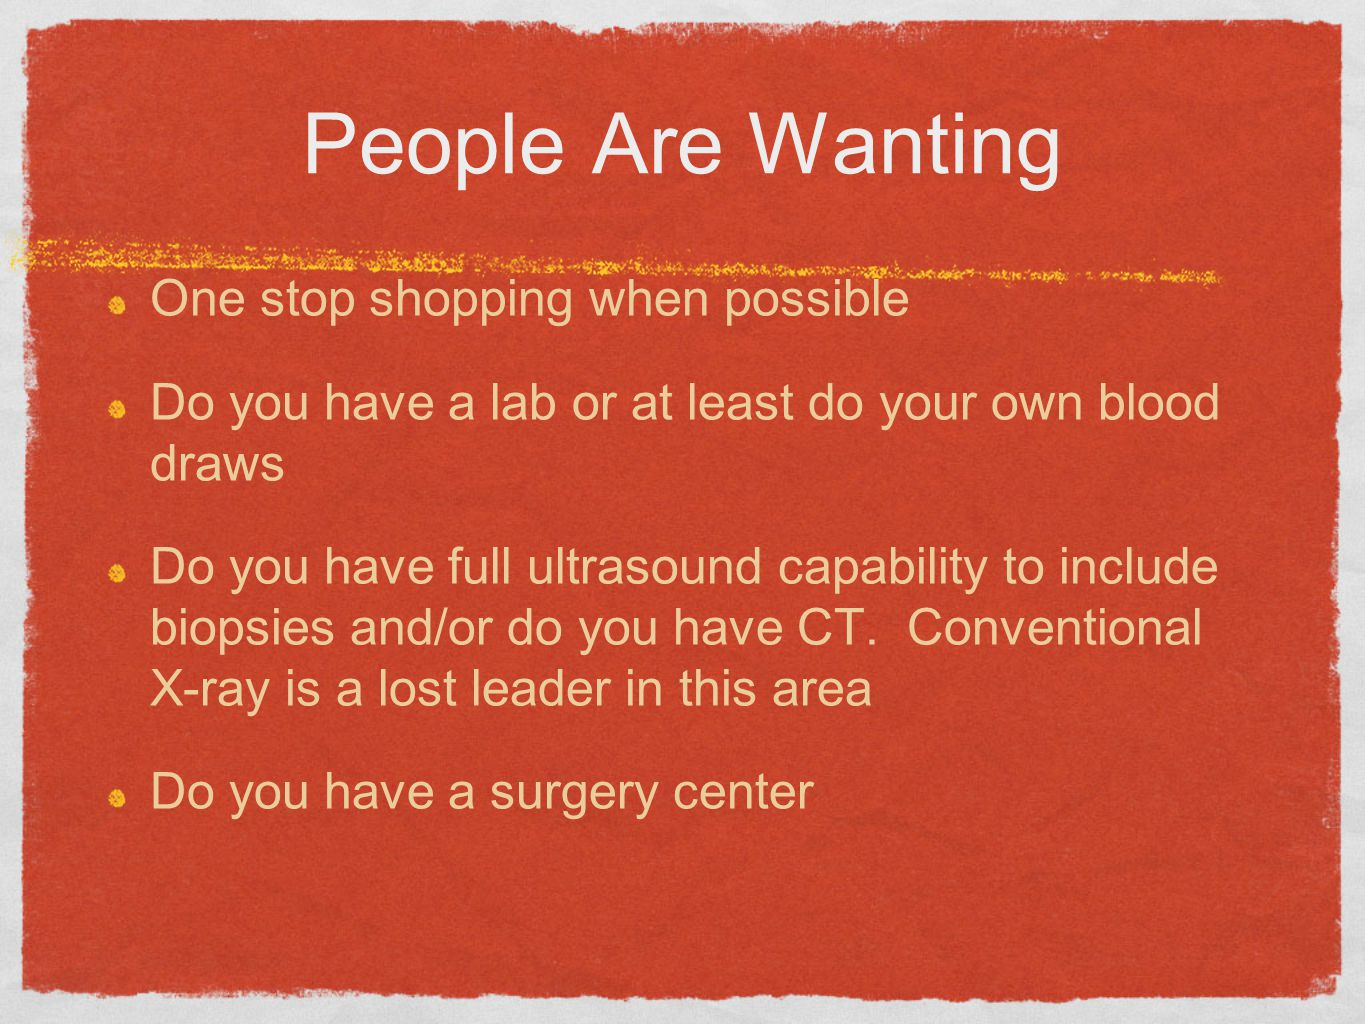 People Are Wanting One stop shopping when possible Do you have a lab or at least do your own blood draws Do you have full ultrasound capability to include biopsies and/or do you have CT.